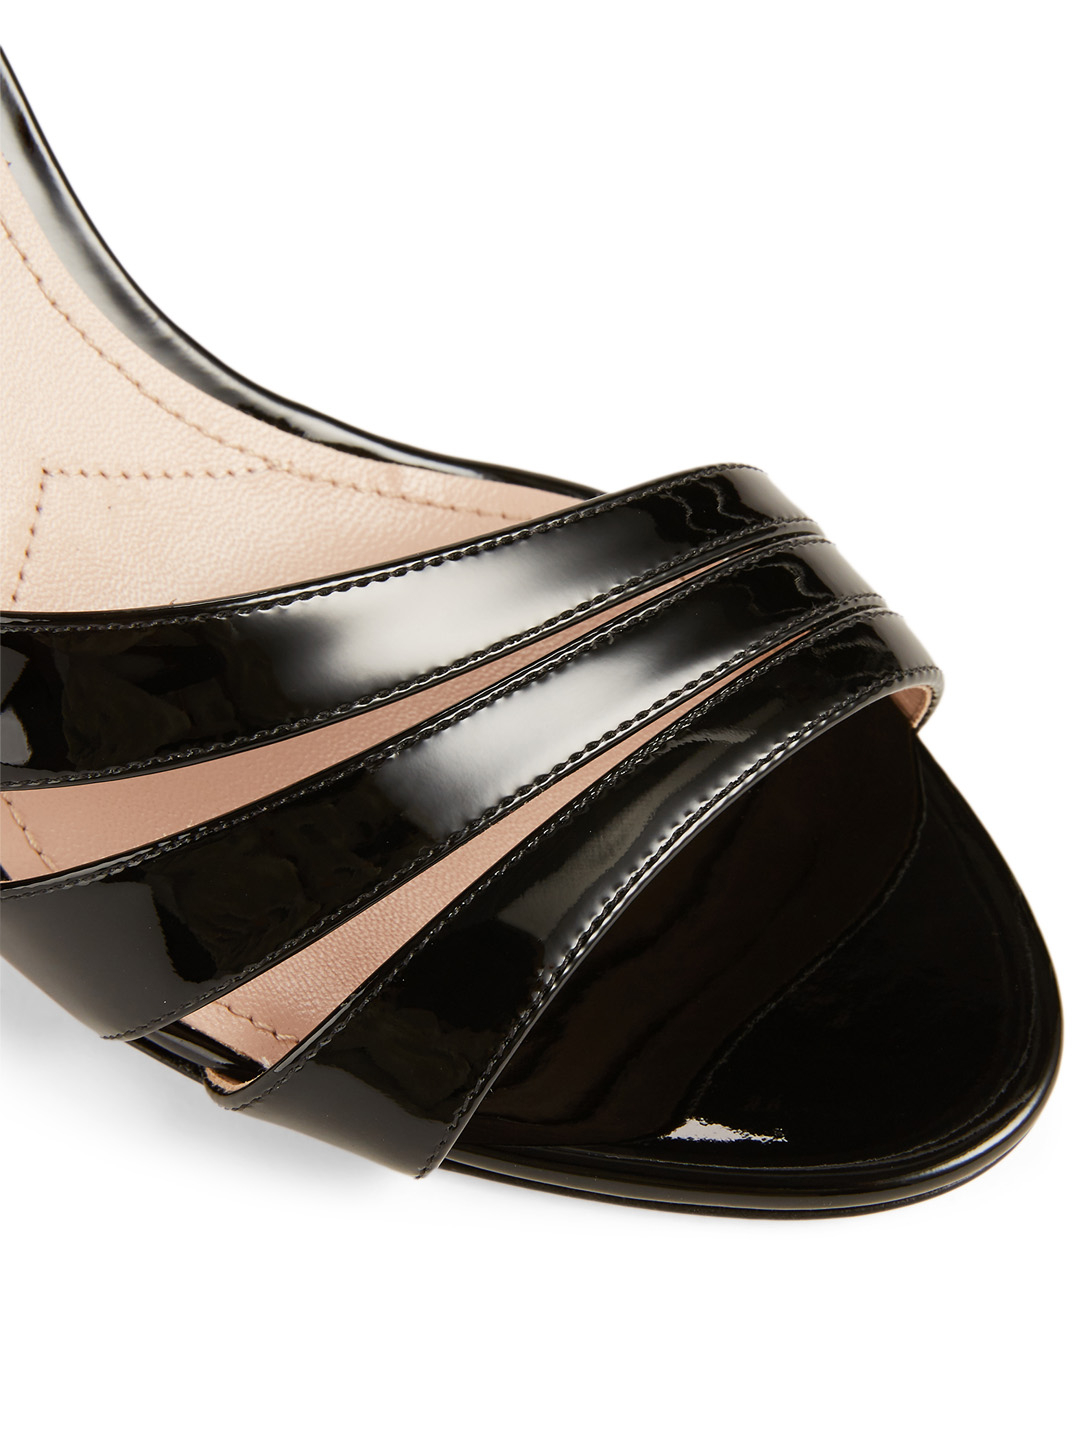 MIU MIU Patent Leather Rainbow Heeled Sandals Womens Black